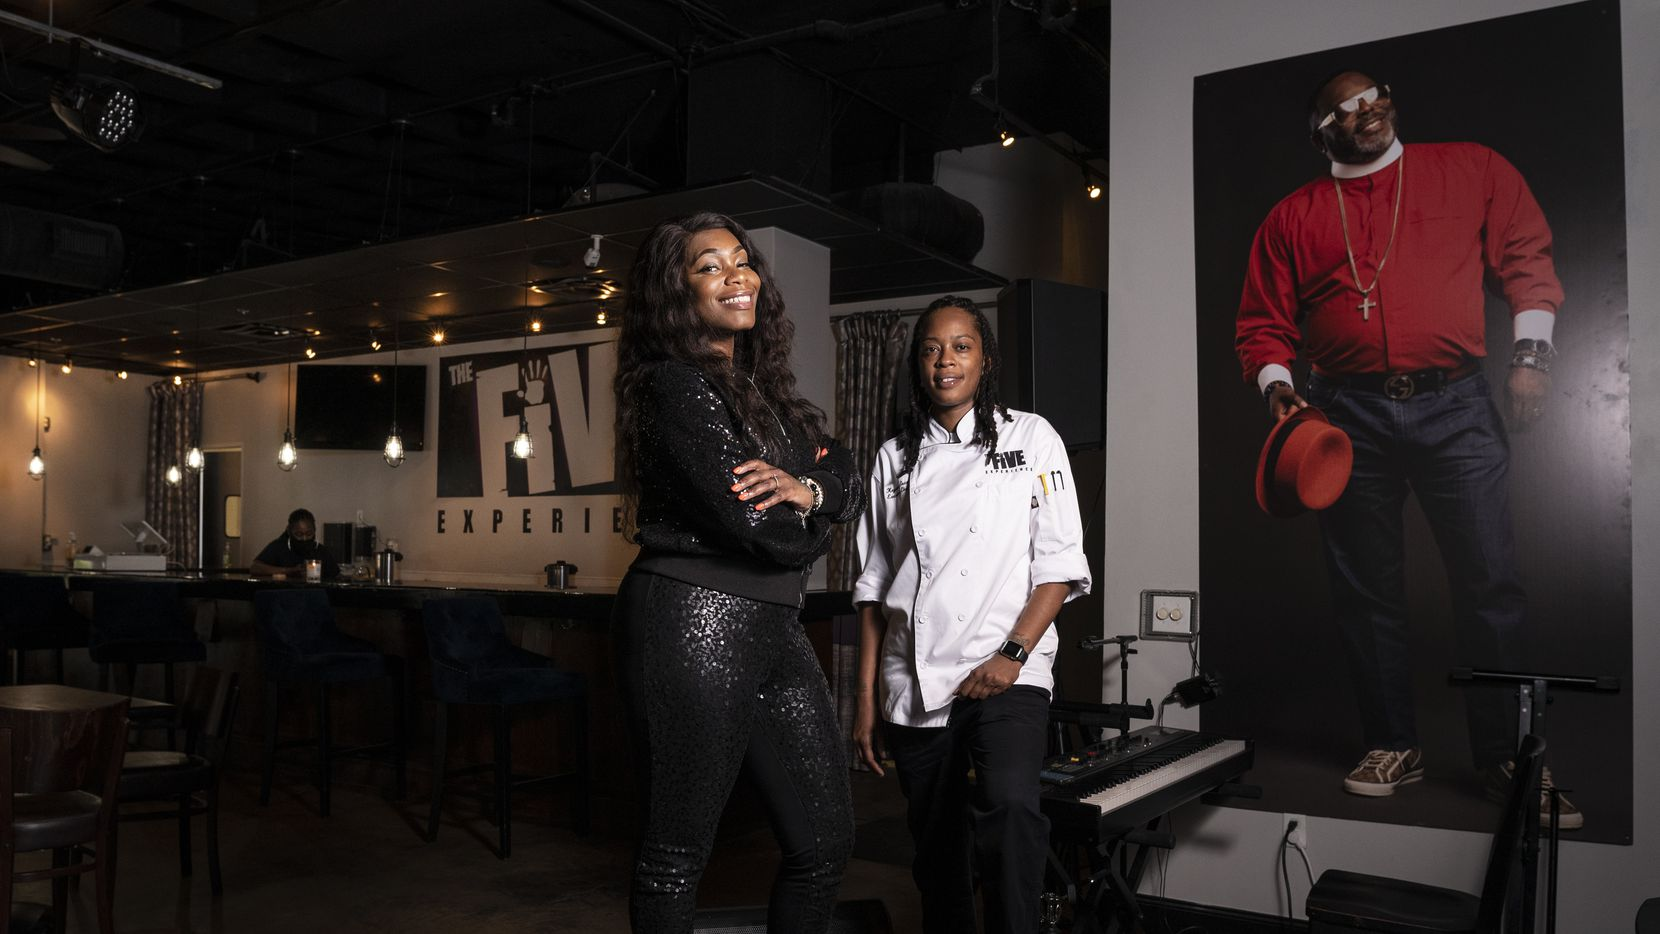 Owner Fayth Jefferson, left, and executive chef Keyonna Grant stand by a photo of the late Bishop Omar Mulidna Jahwar at The Five Experience. The restaurant opens in May 2021 on Botham Jean Boulevard in Dallas.